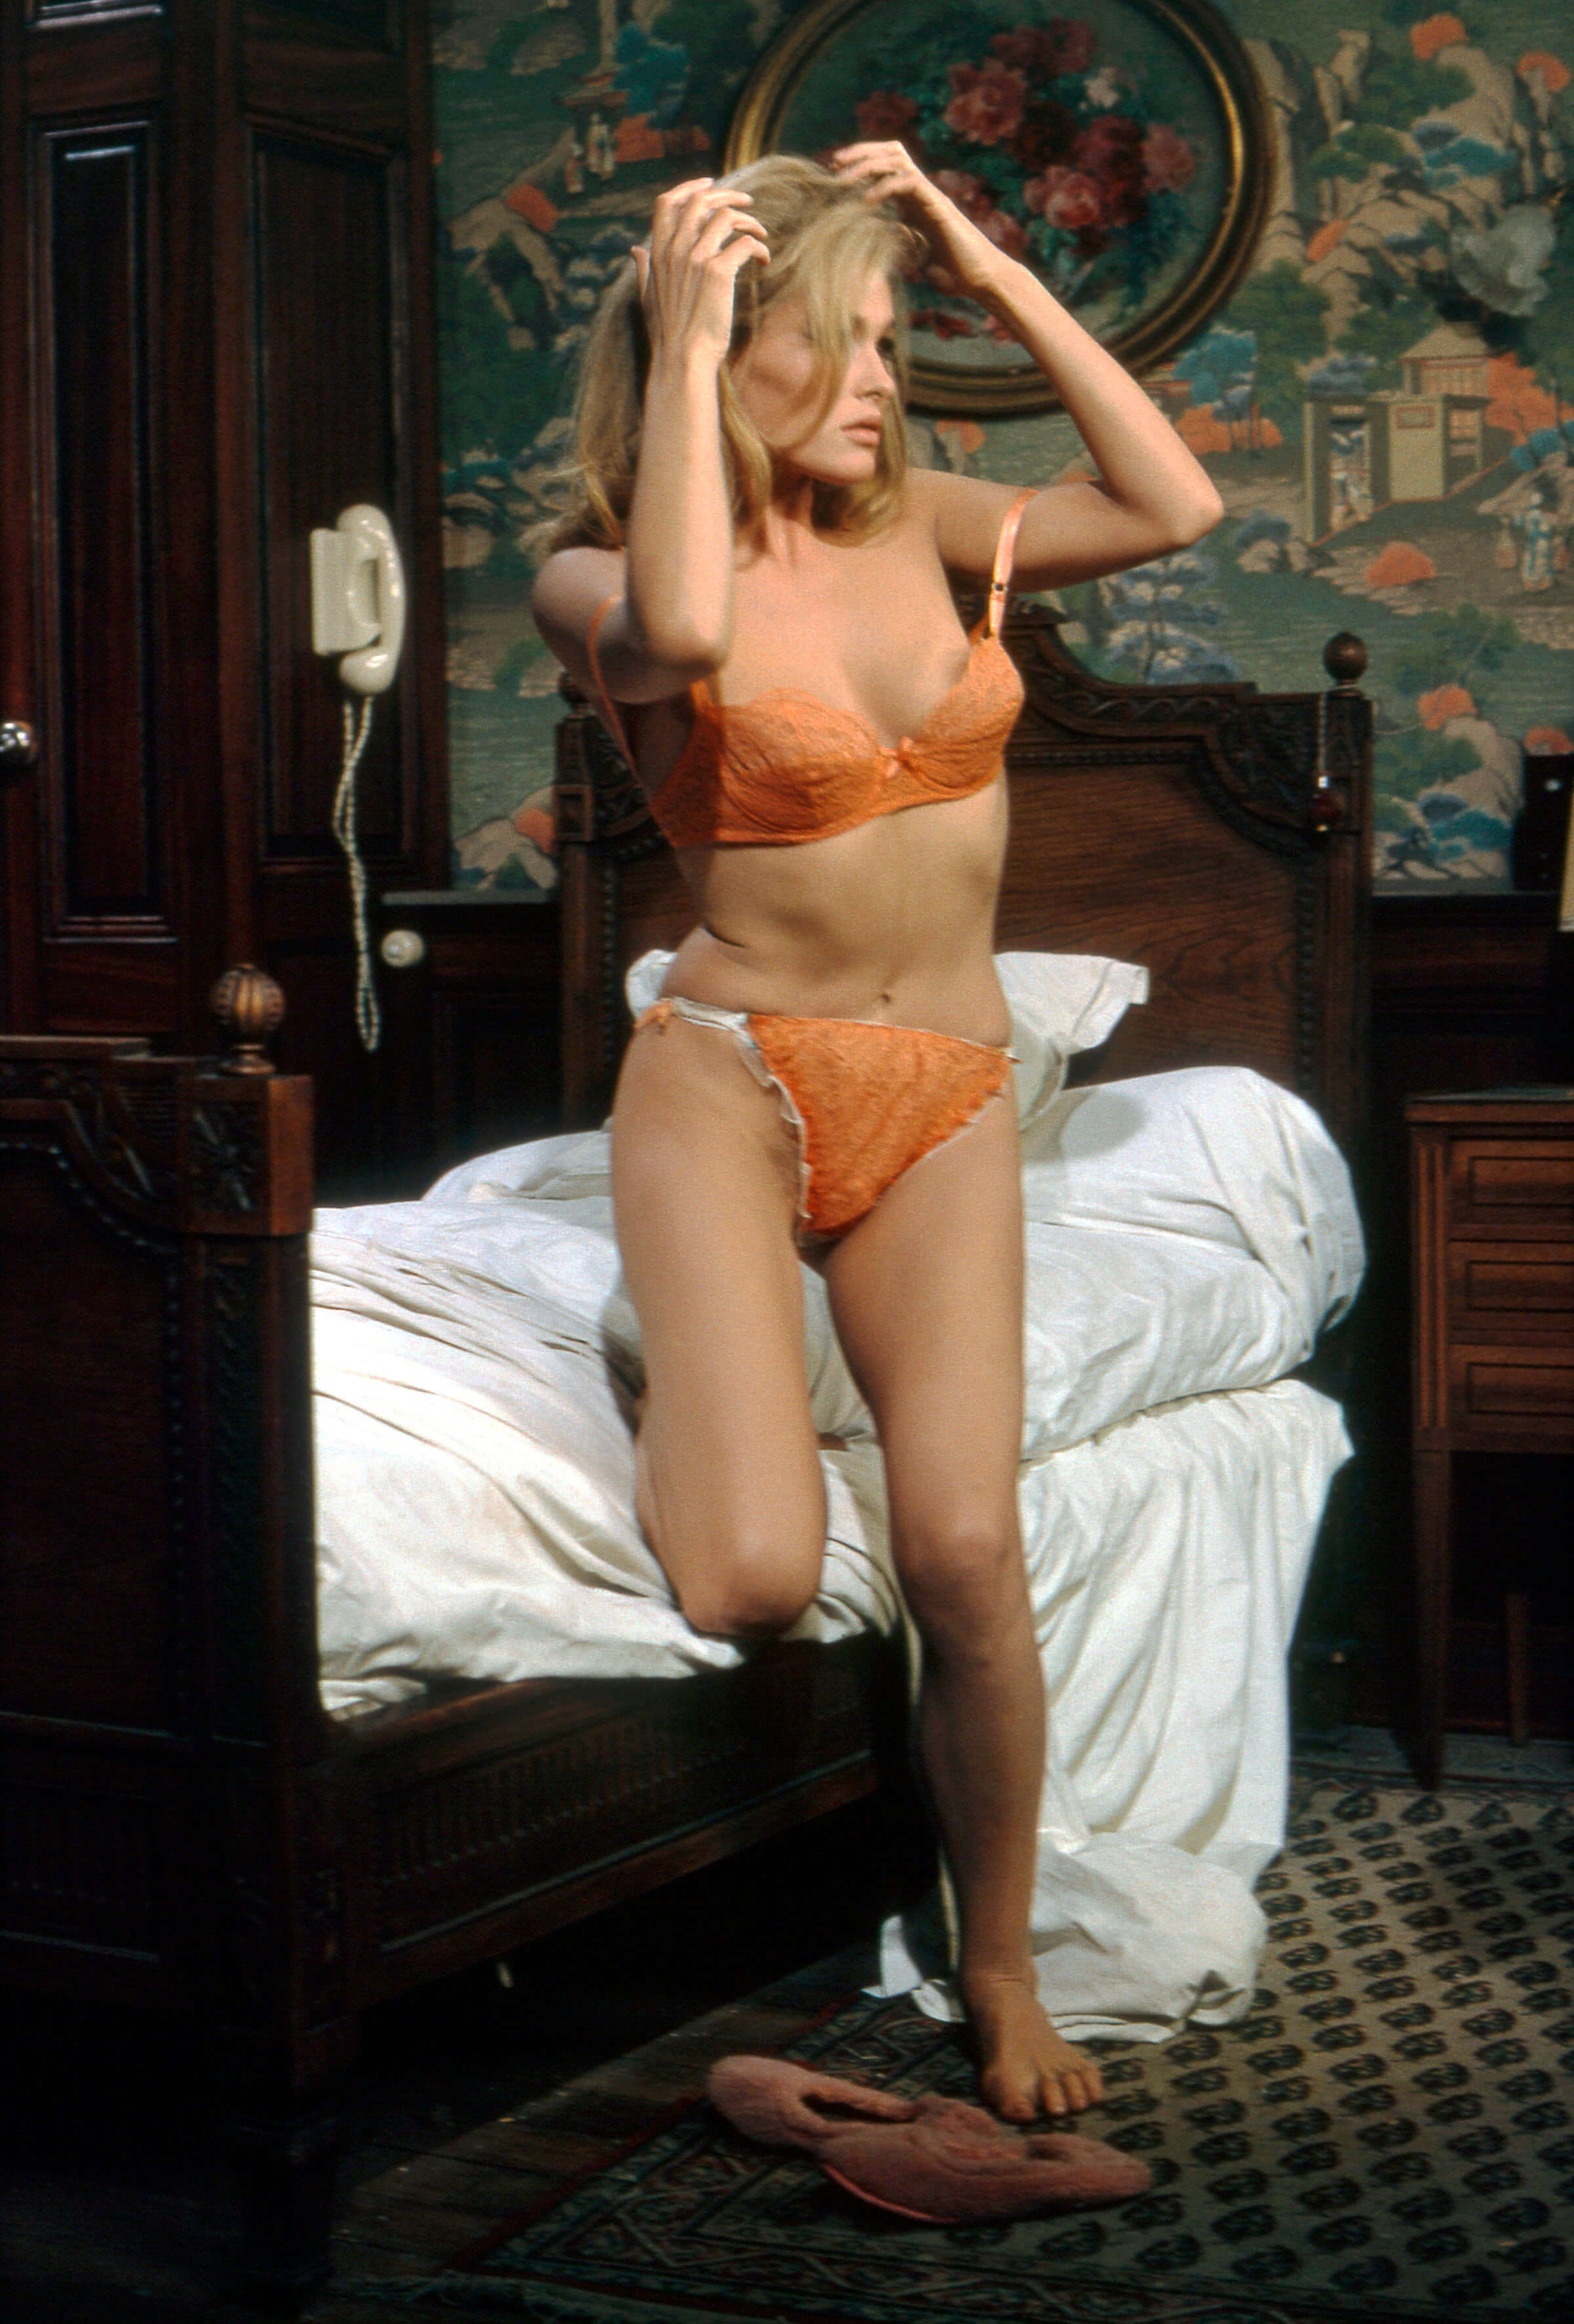 Ursula-Andress-hot-bini-photos-min